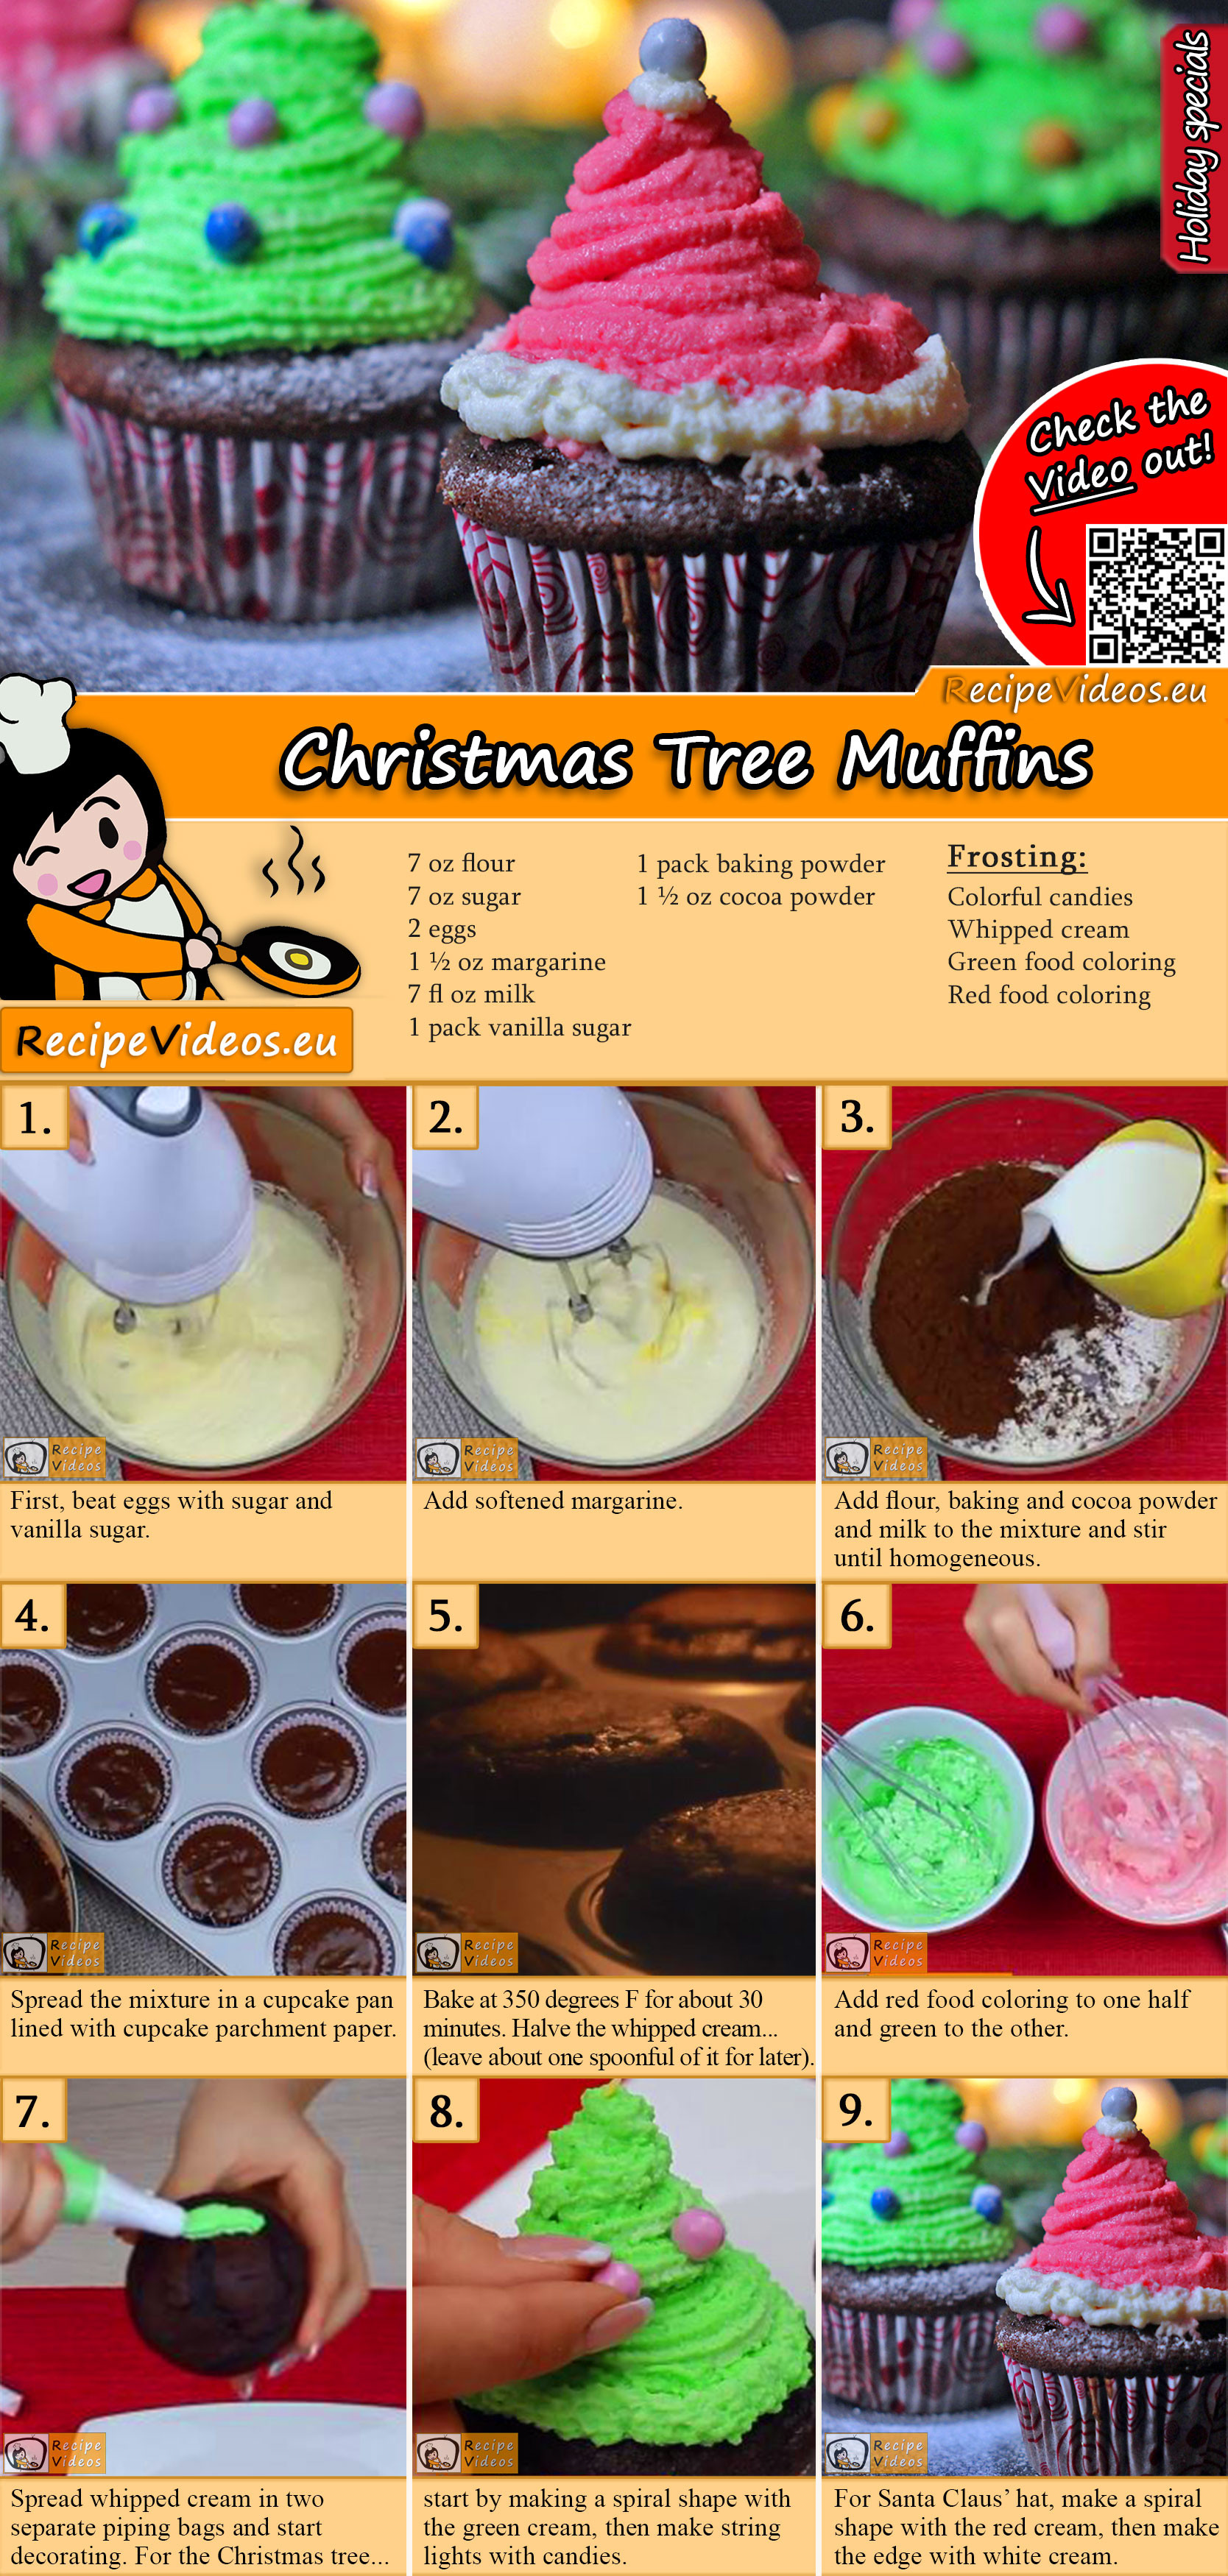 Christmas Tree Muffins recipe with video